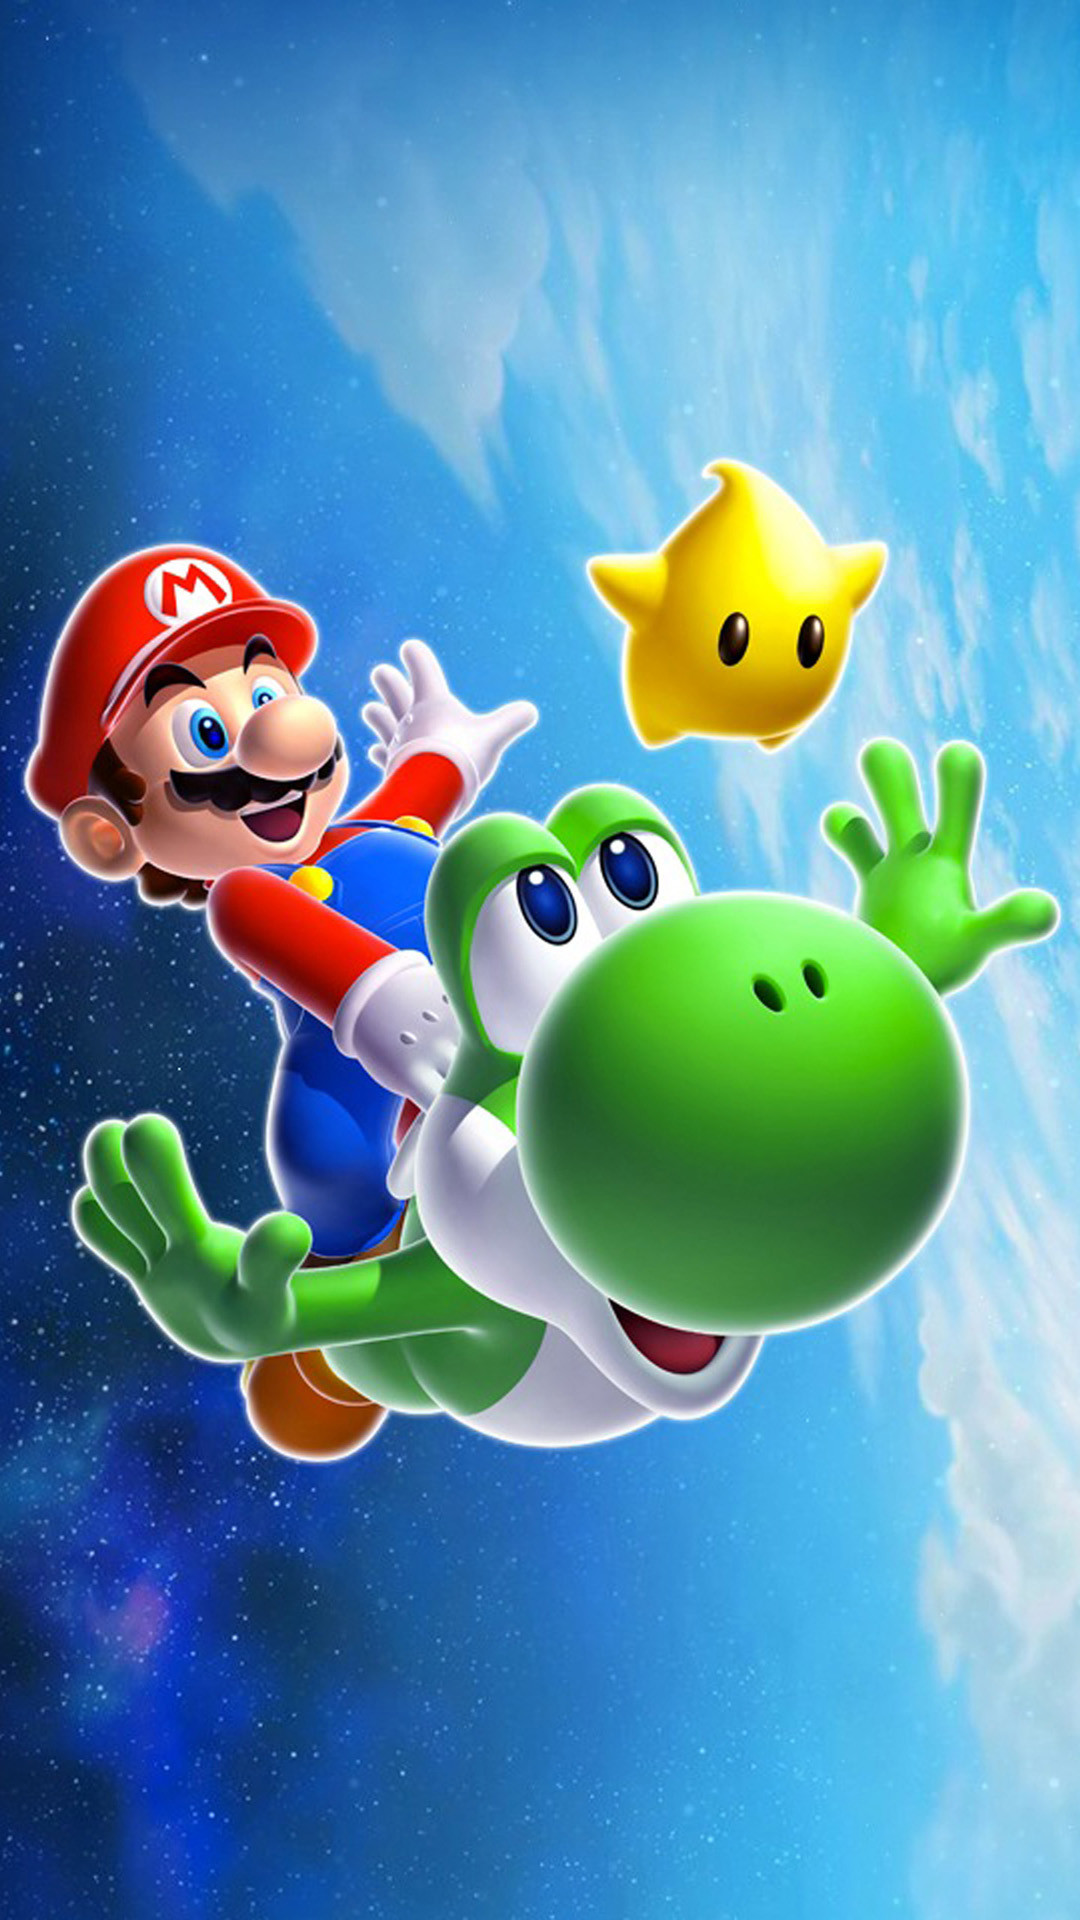 1080x1920 hd super mario bros world mobile phone wallpapers